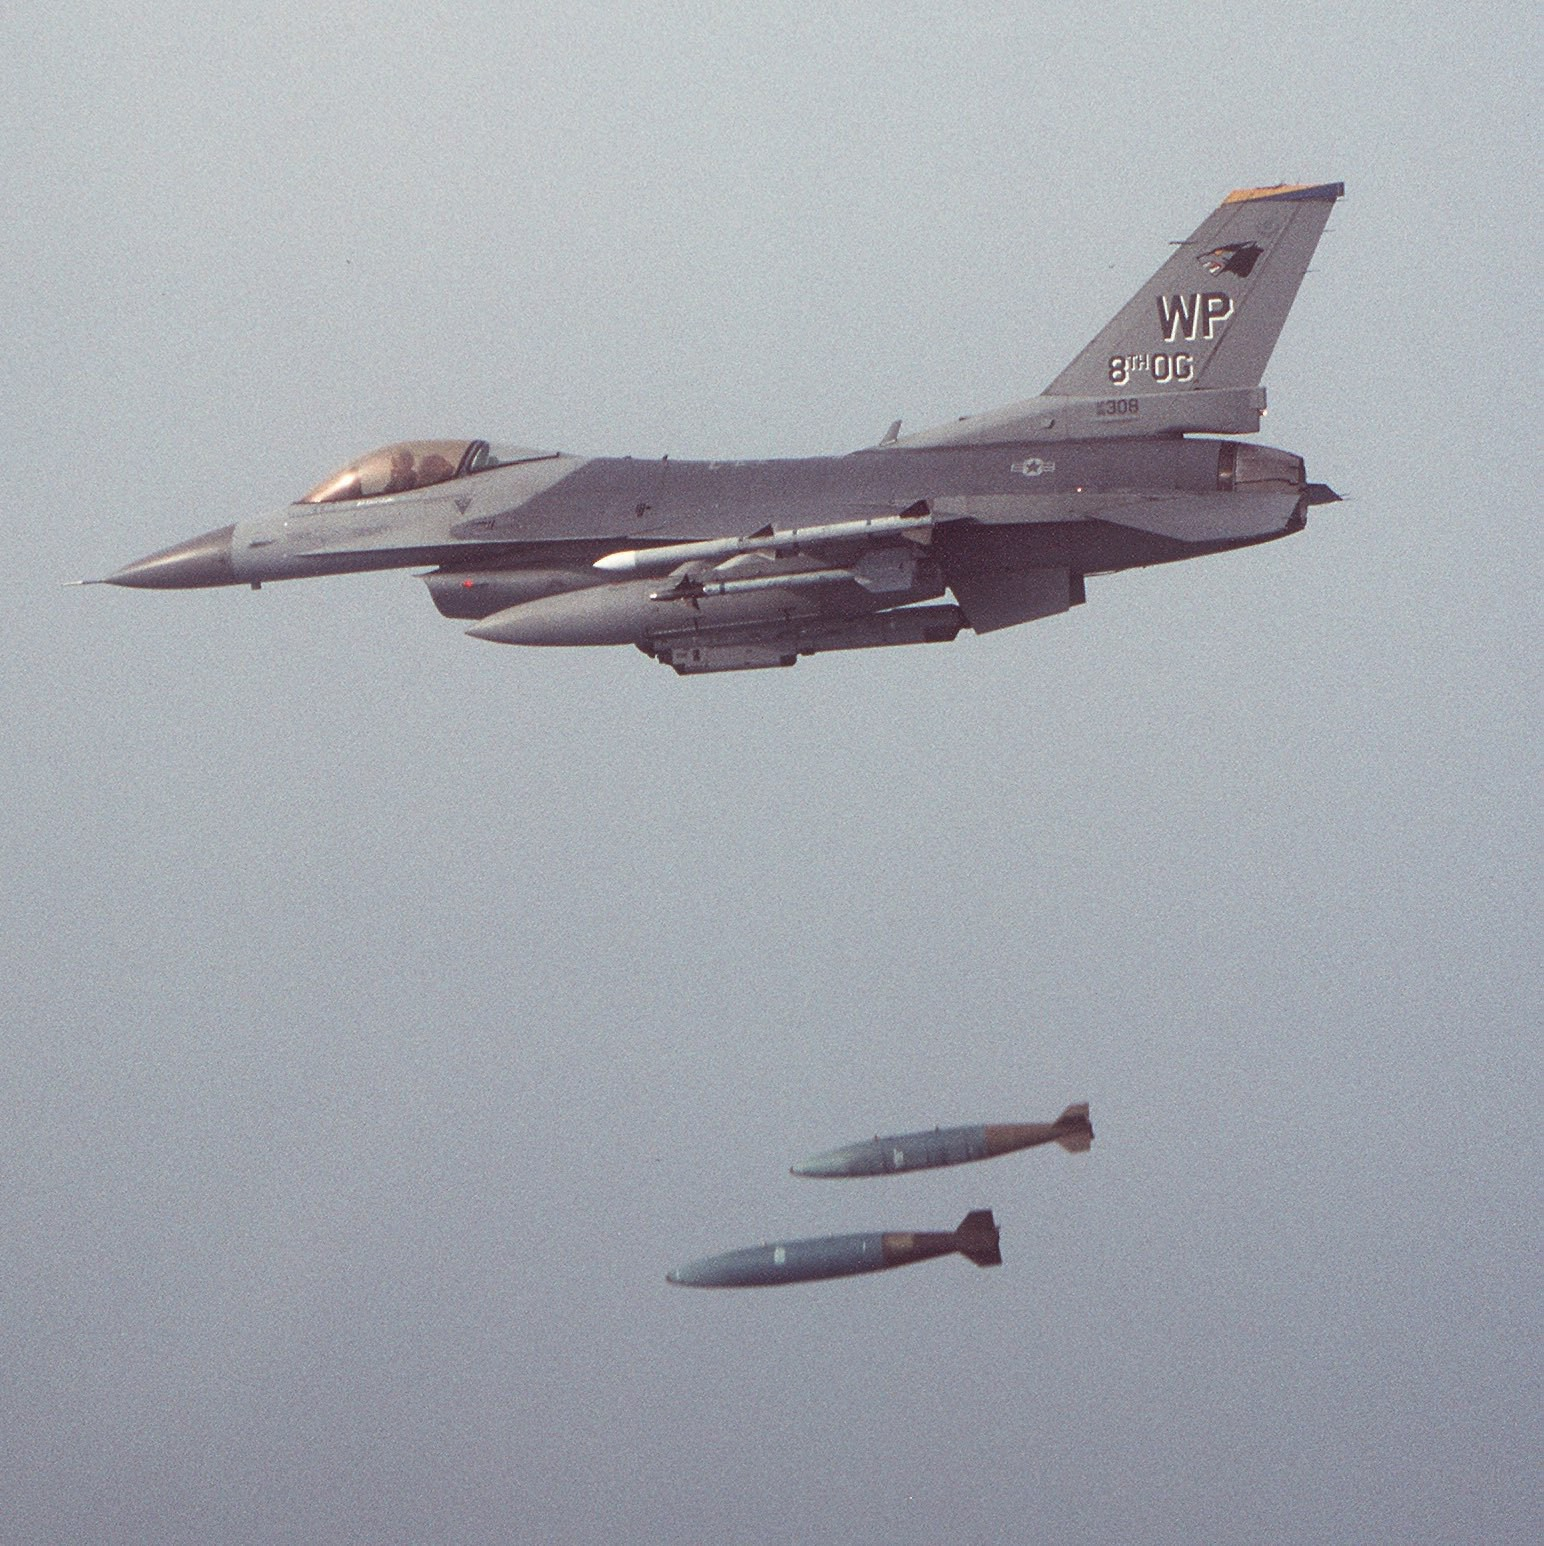 F-16 dropping a pair of bombs.